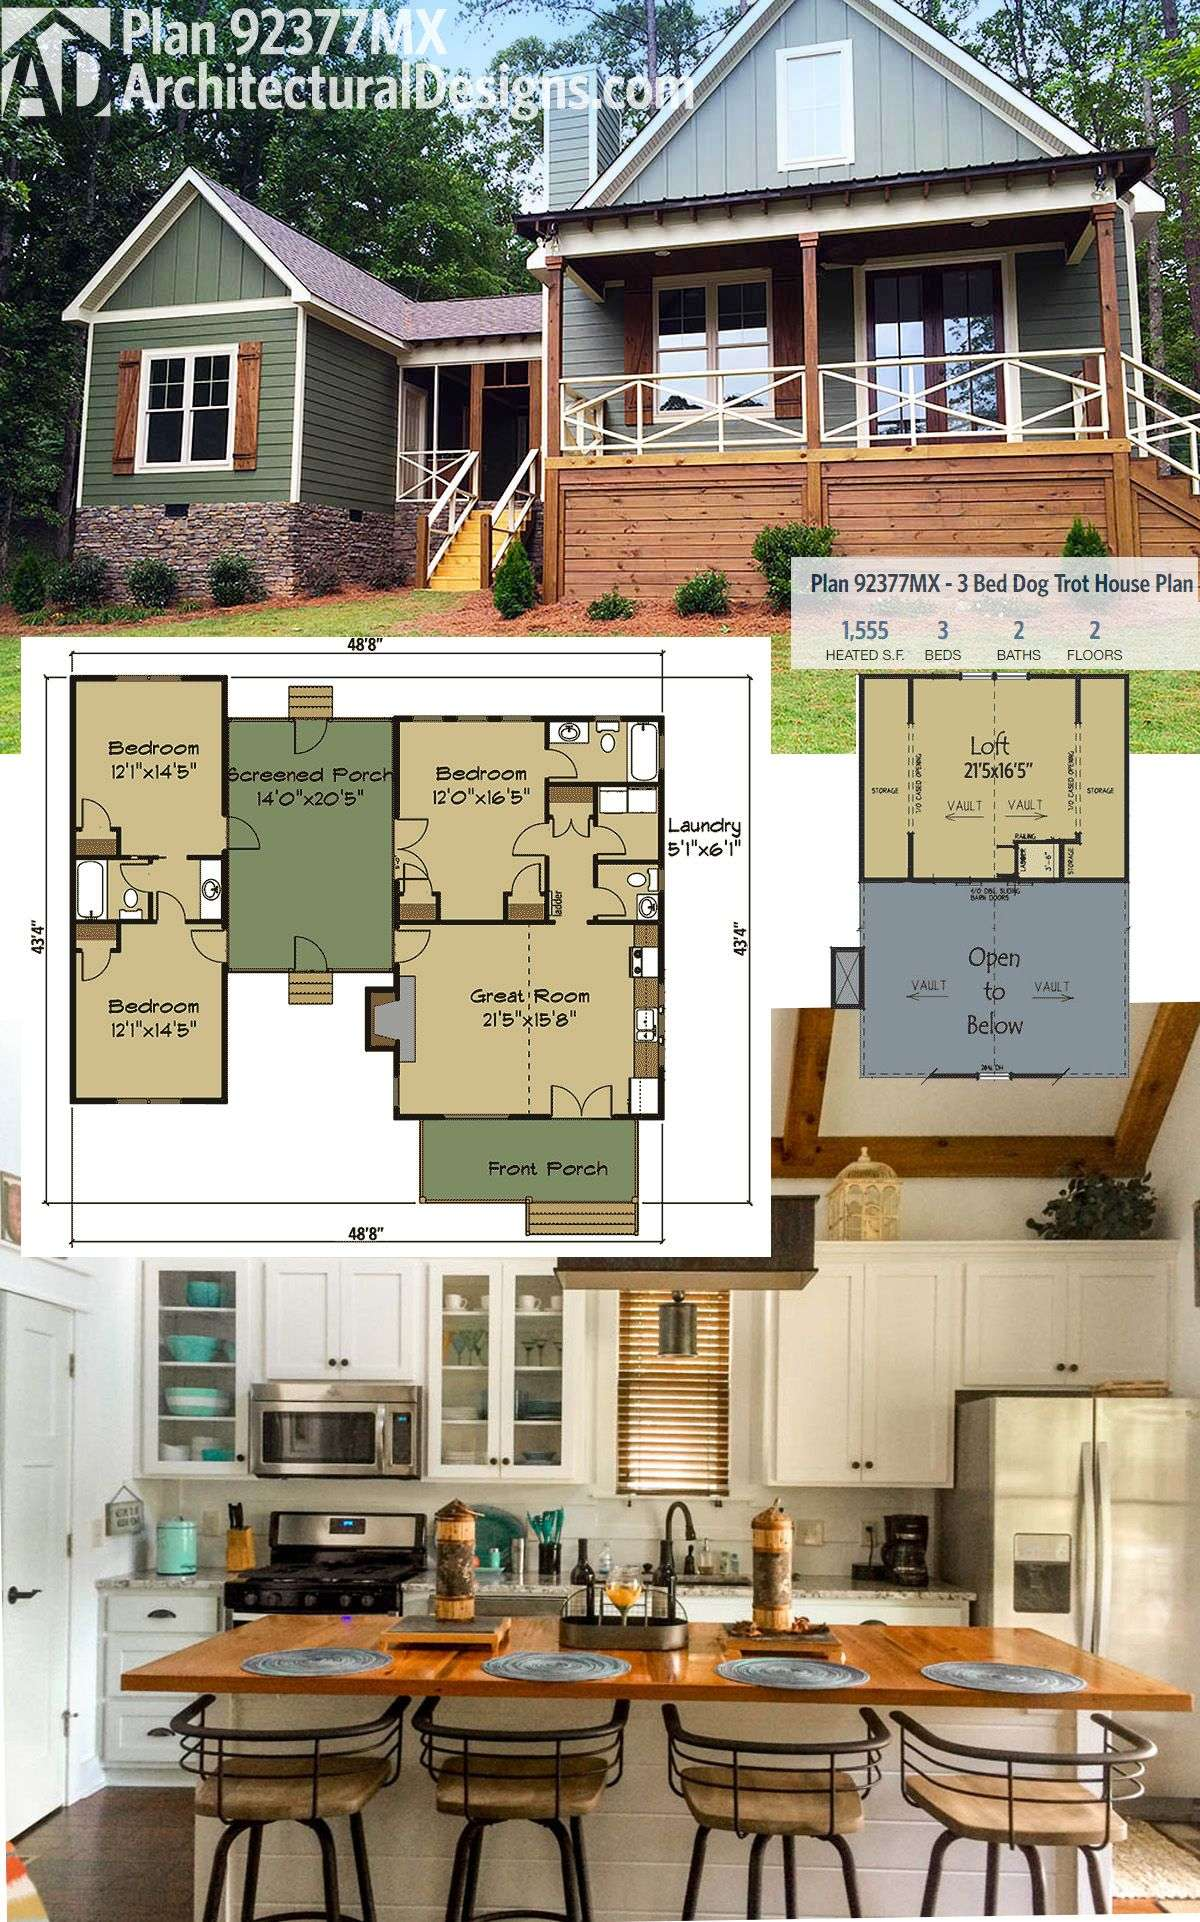 Architectural Designs Dog Trot House Plan Gives